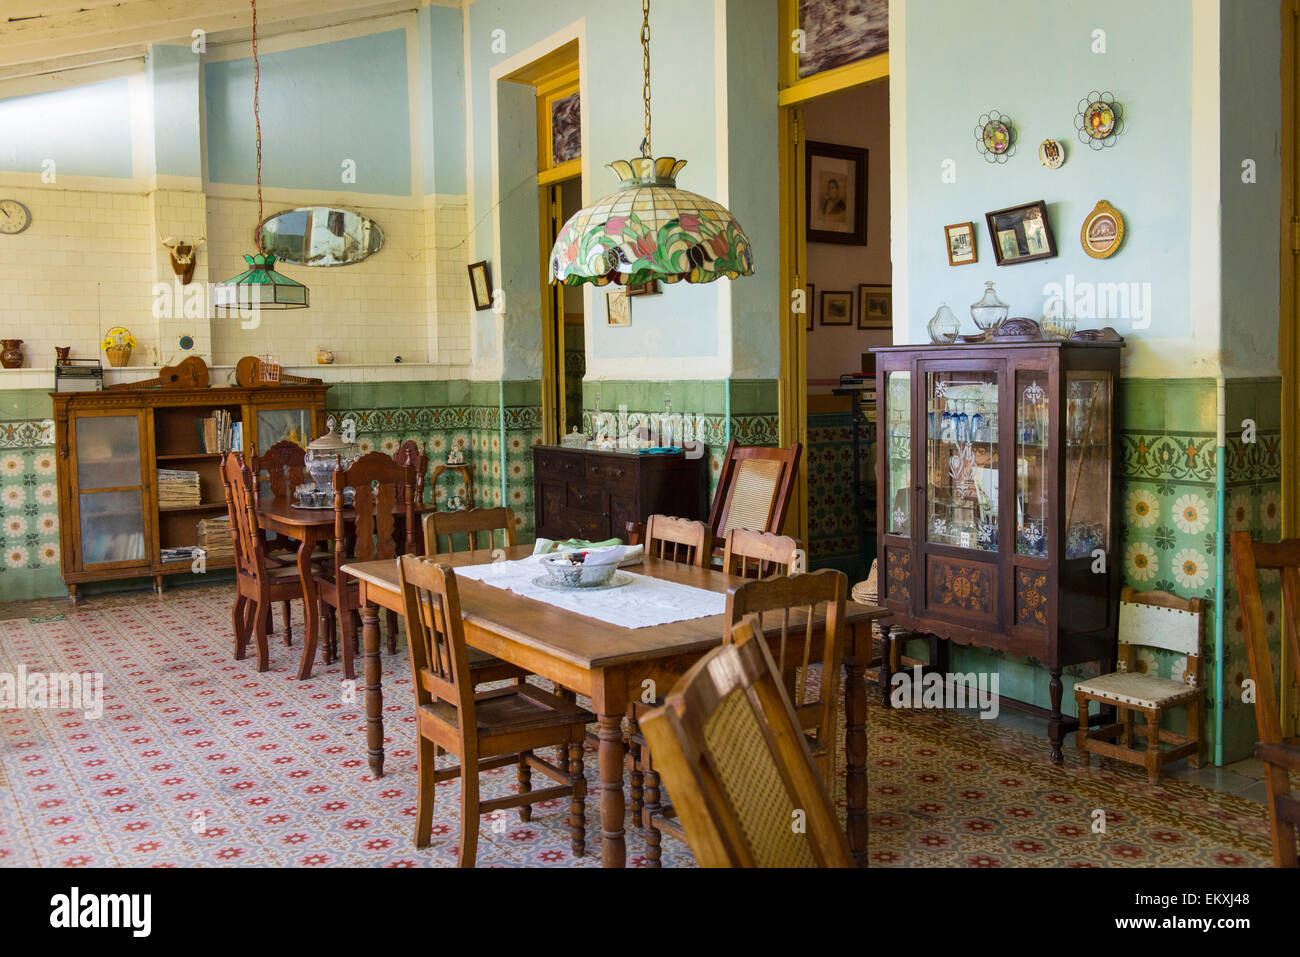 Cuba Trinidad typical Cuban home old antique furniture sideboard vitrine ornate walls & tiles lamp shades table - Stock Image